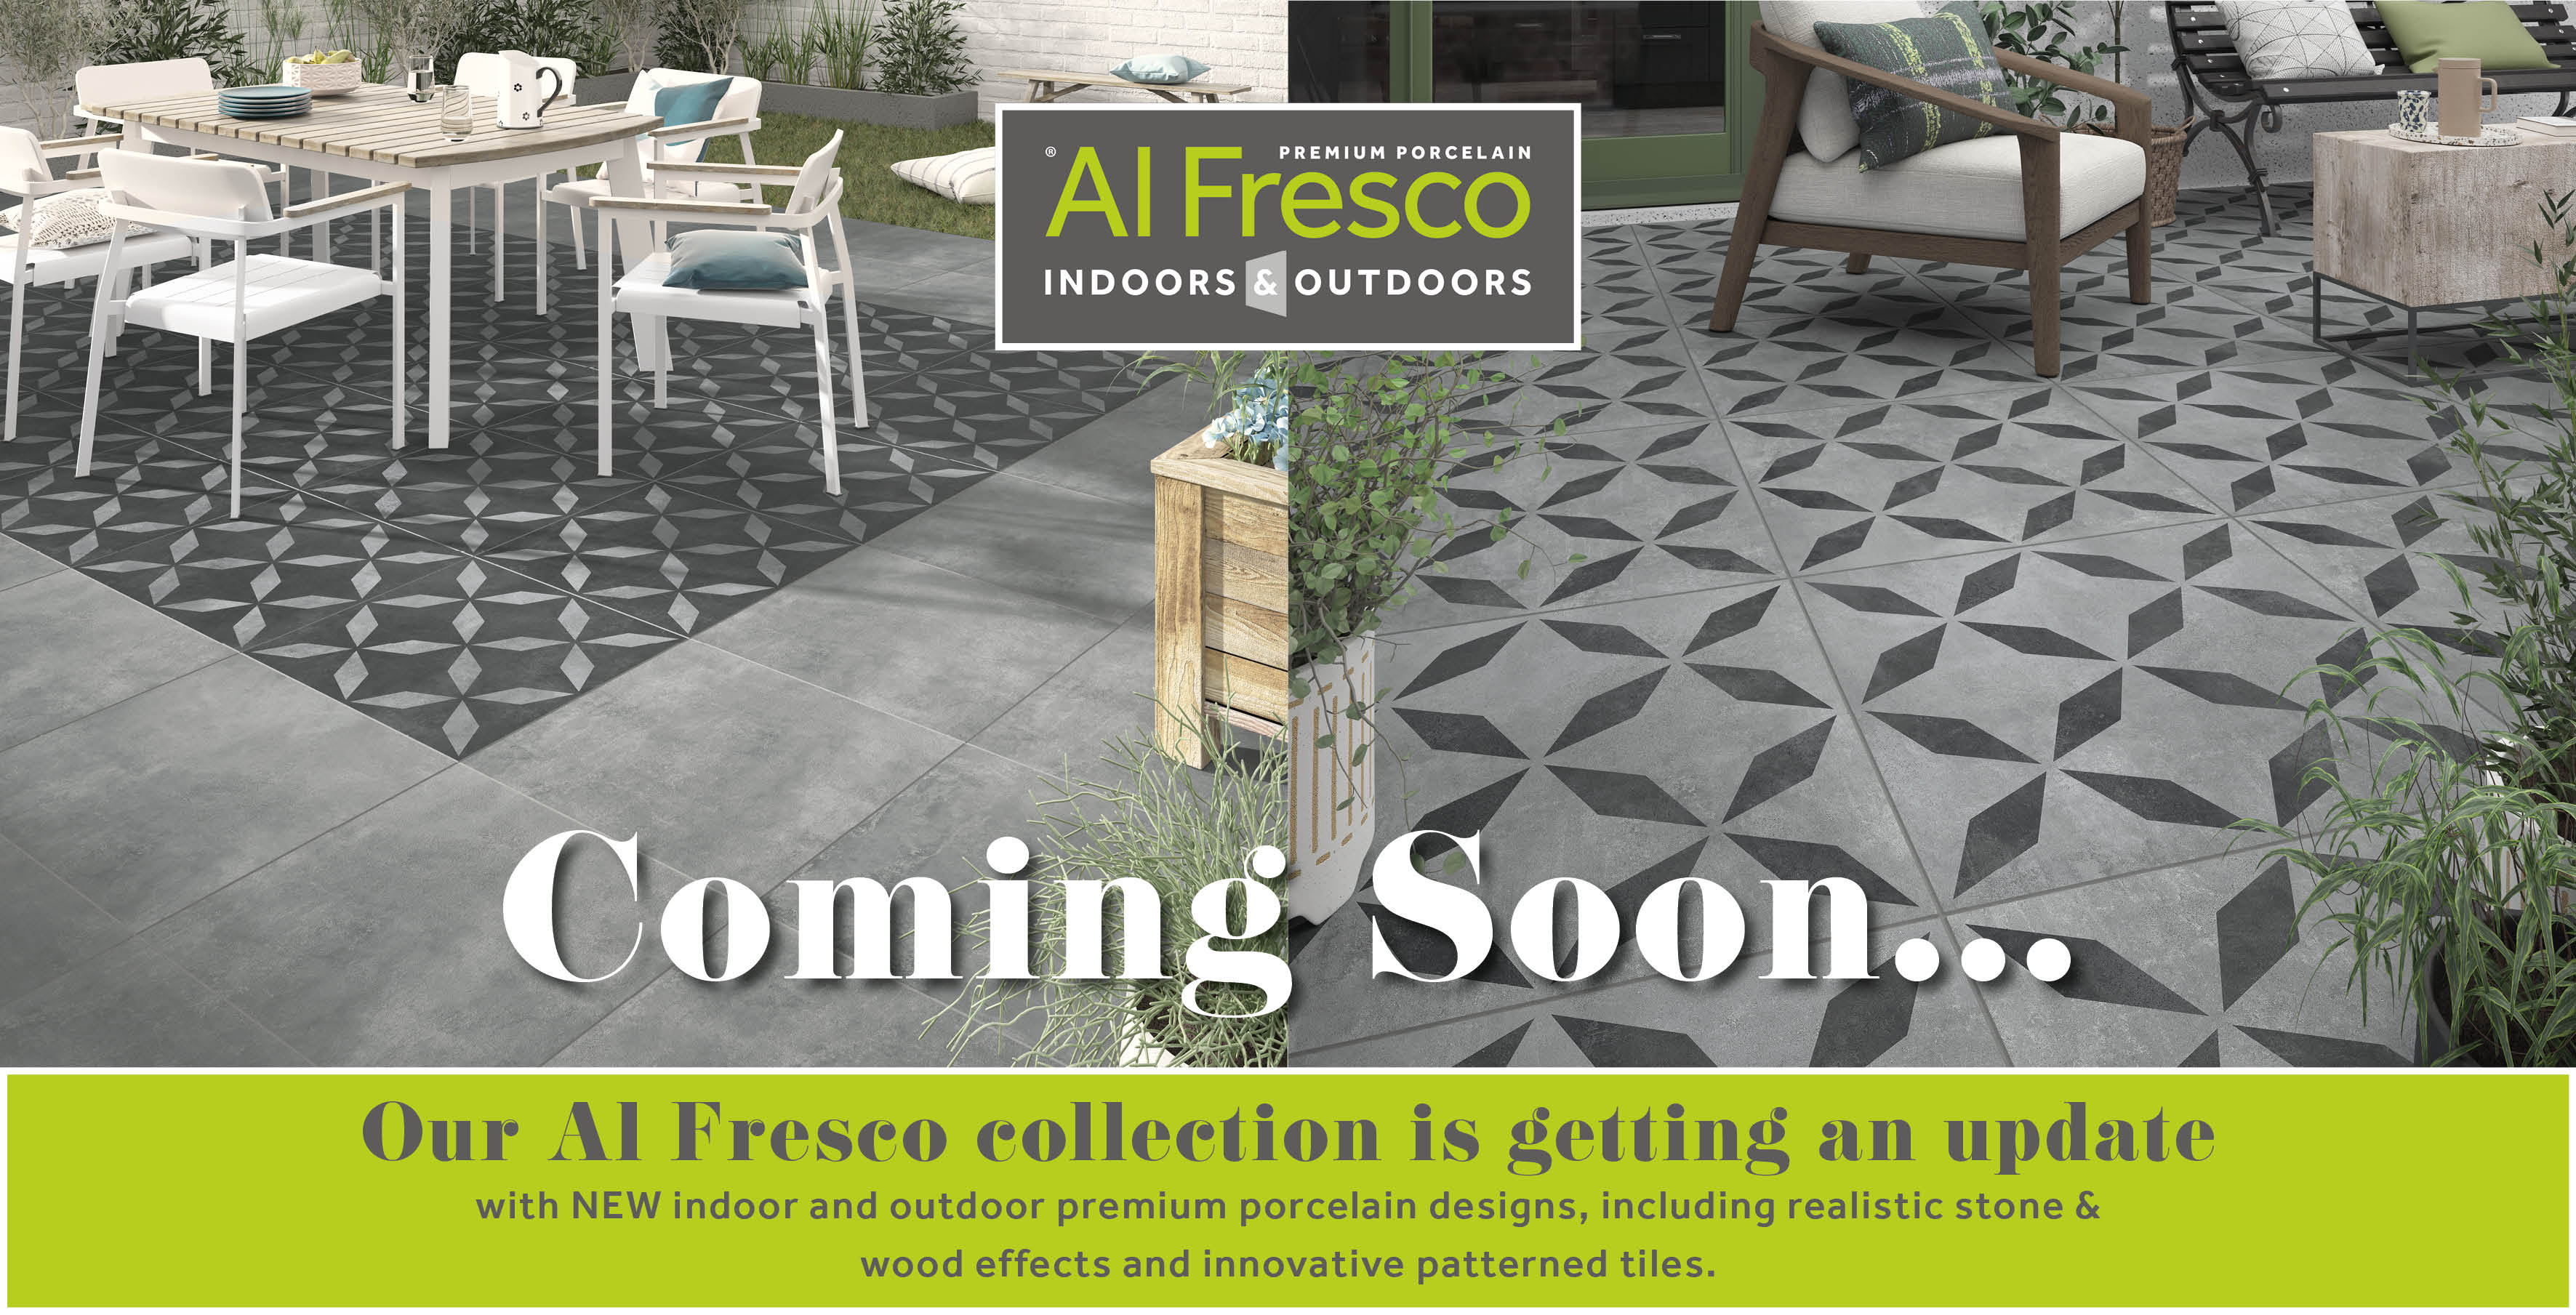 Updated Al Fresco collection coming soon